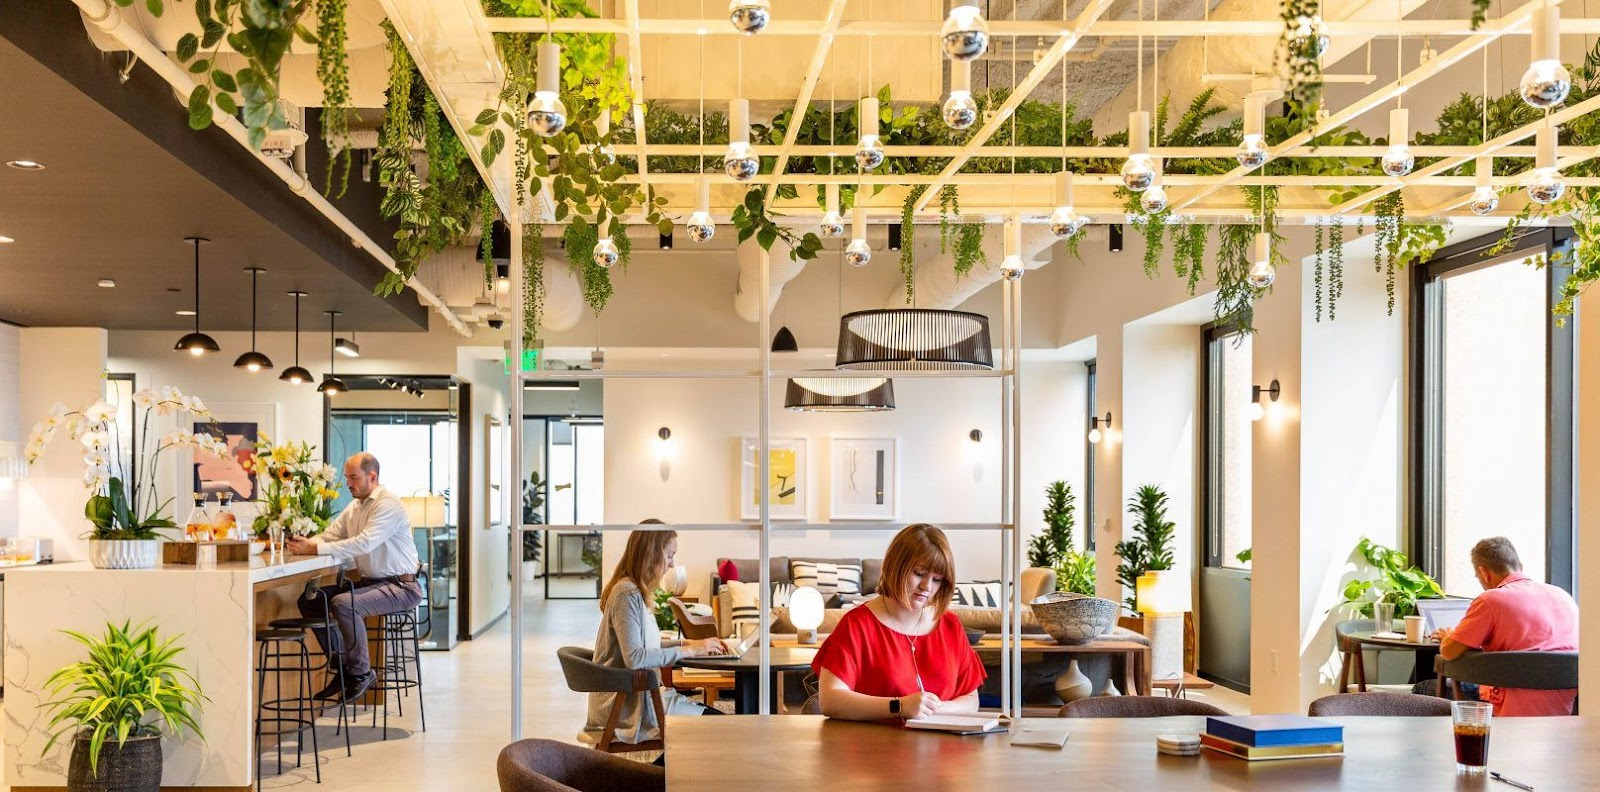 Coworking Space Brooklyn: 12 Best Spaces with Pricing, Amenities & Location[2021] 30